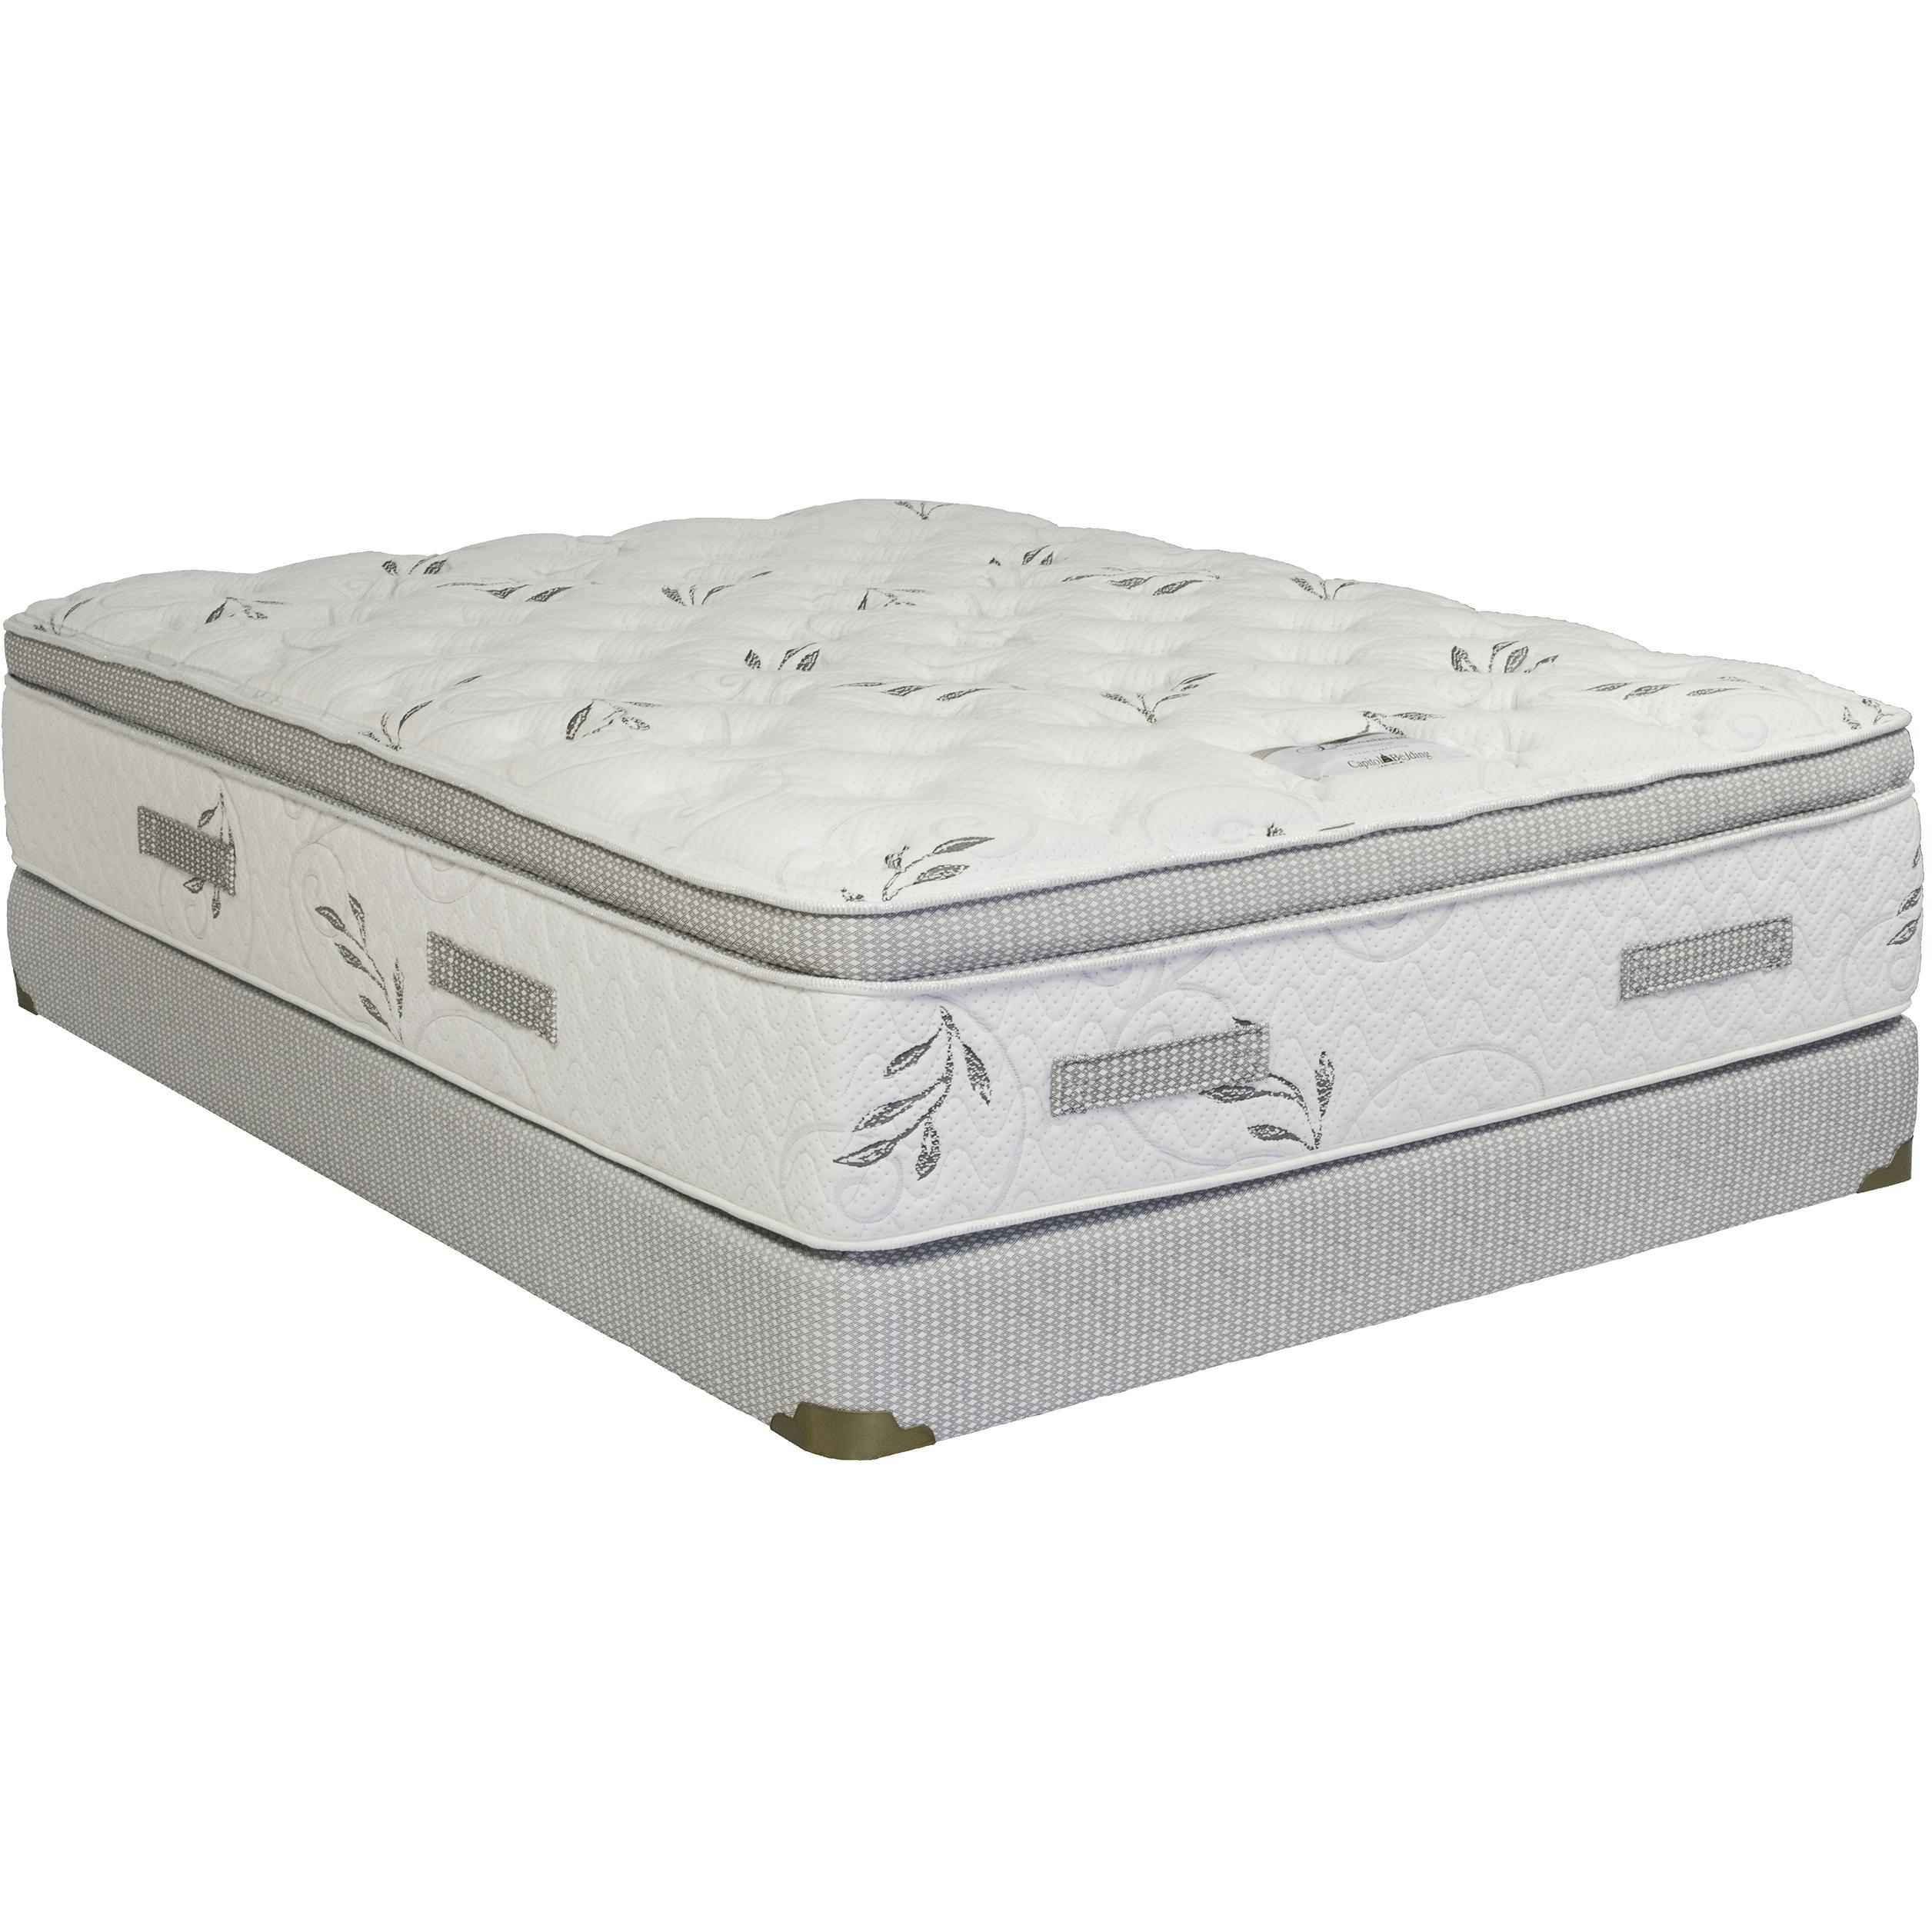 Capitol Bedding Opulence Full Pillow Top Low Profile Set - Item Number: PillowTop-F+HMI-TR-FX-38-F